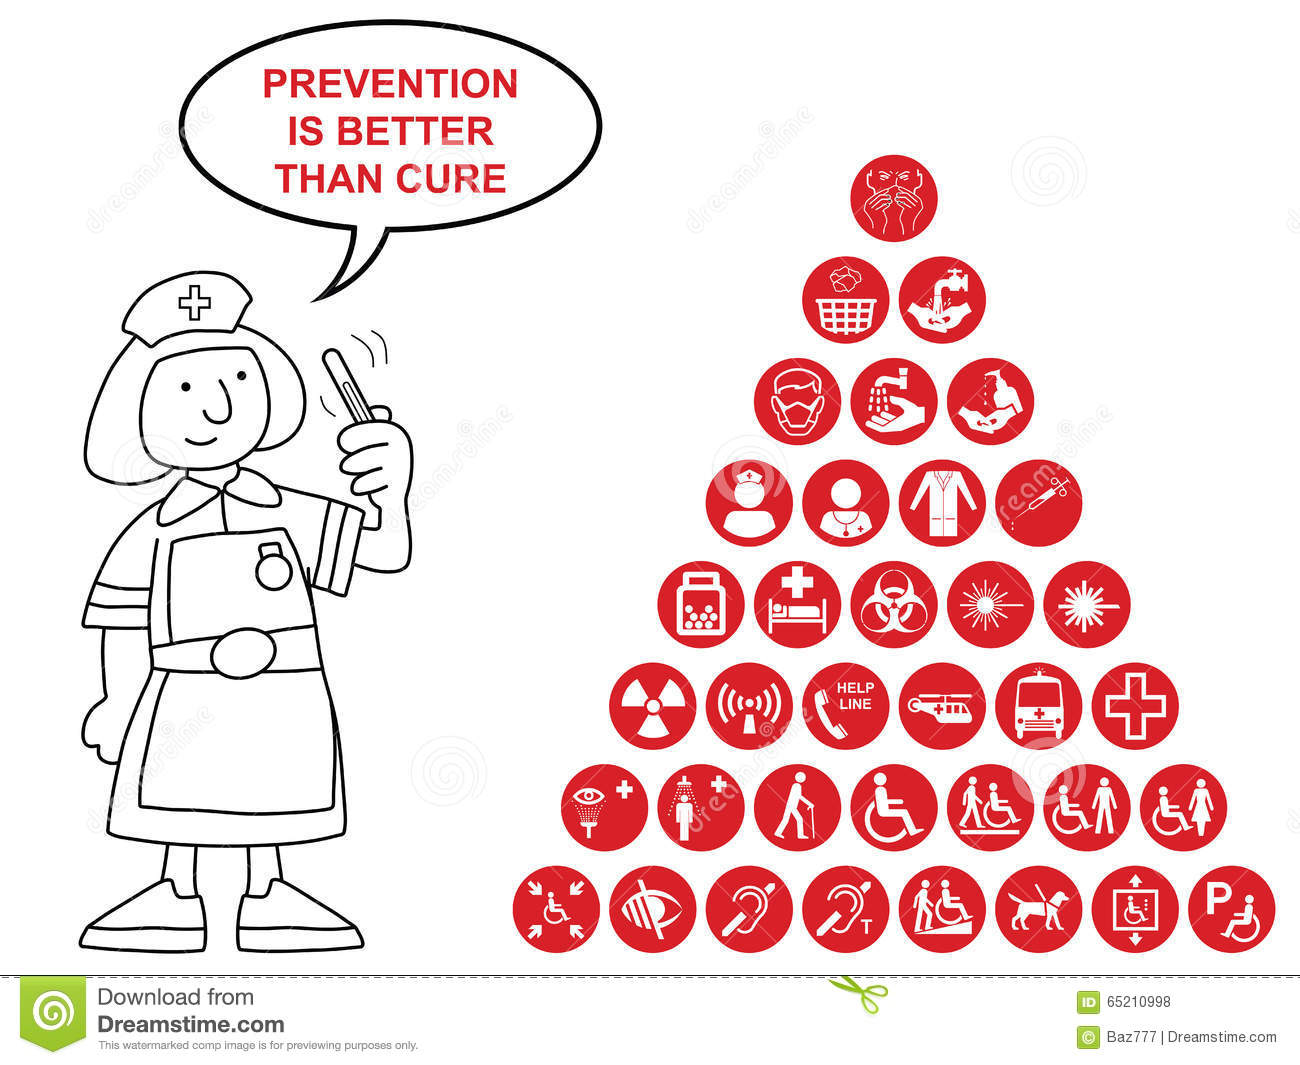 prevention better than cure Prevention is better than cure: targeted vaccination to halt epidemics - the european commission's science and knowledge service.